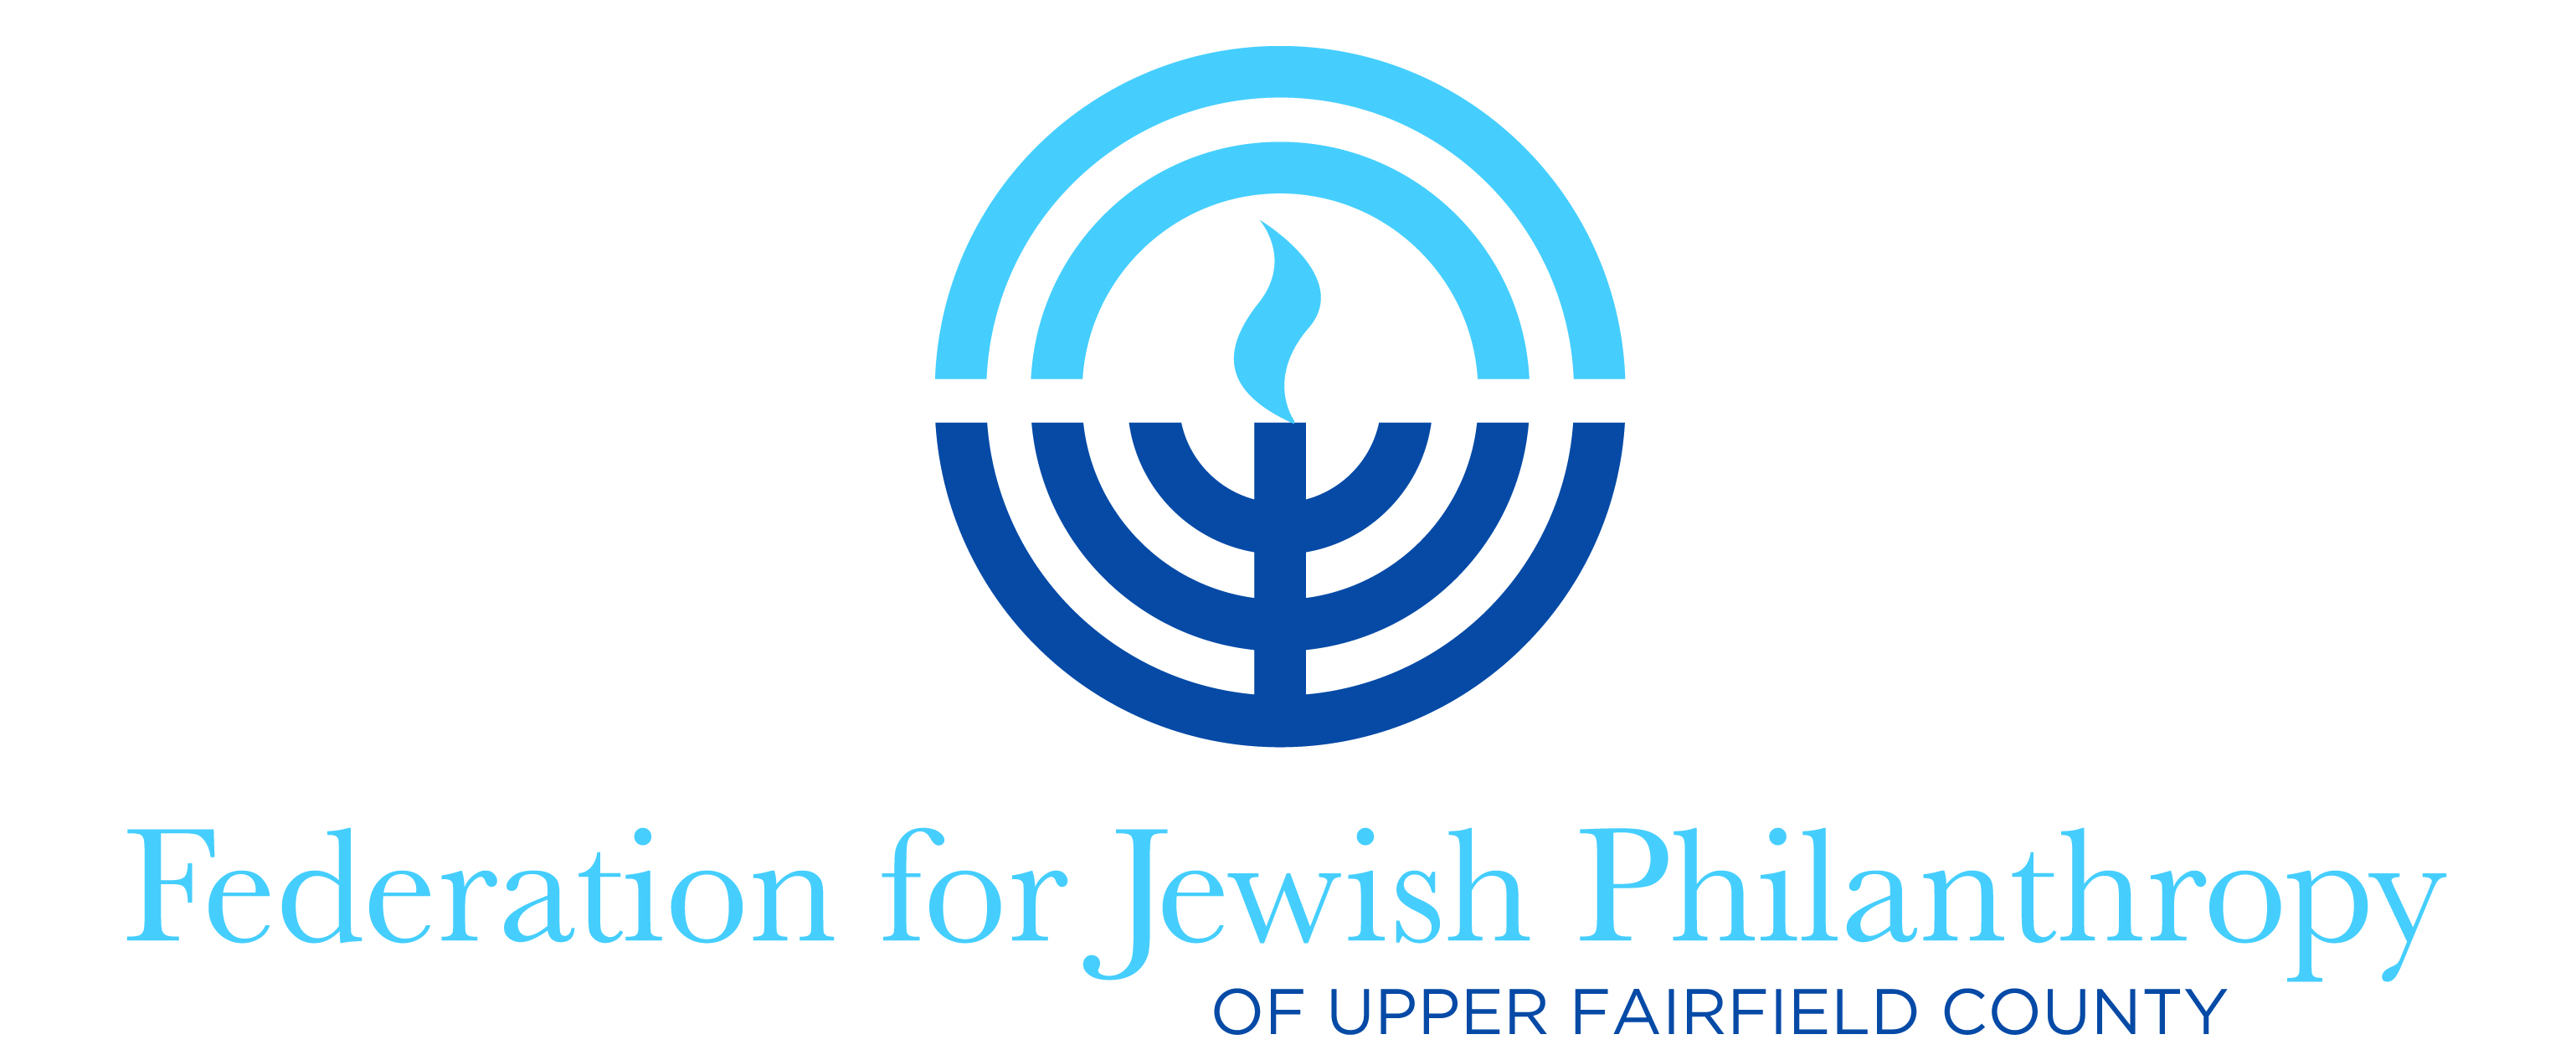 Federation for Jewish Philanthropy of Upper Fairfield County